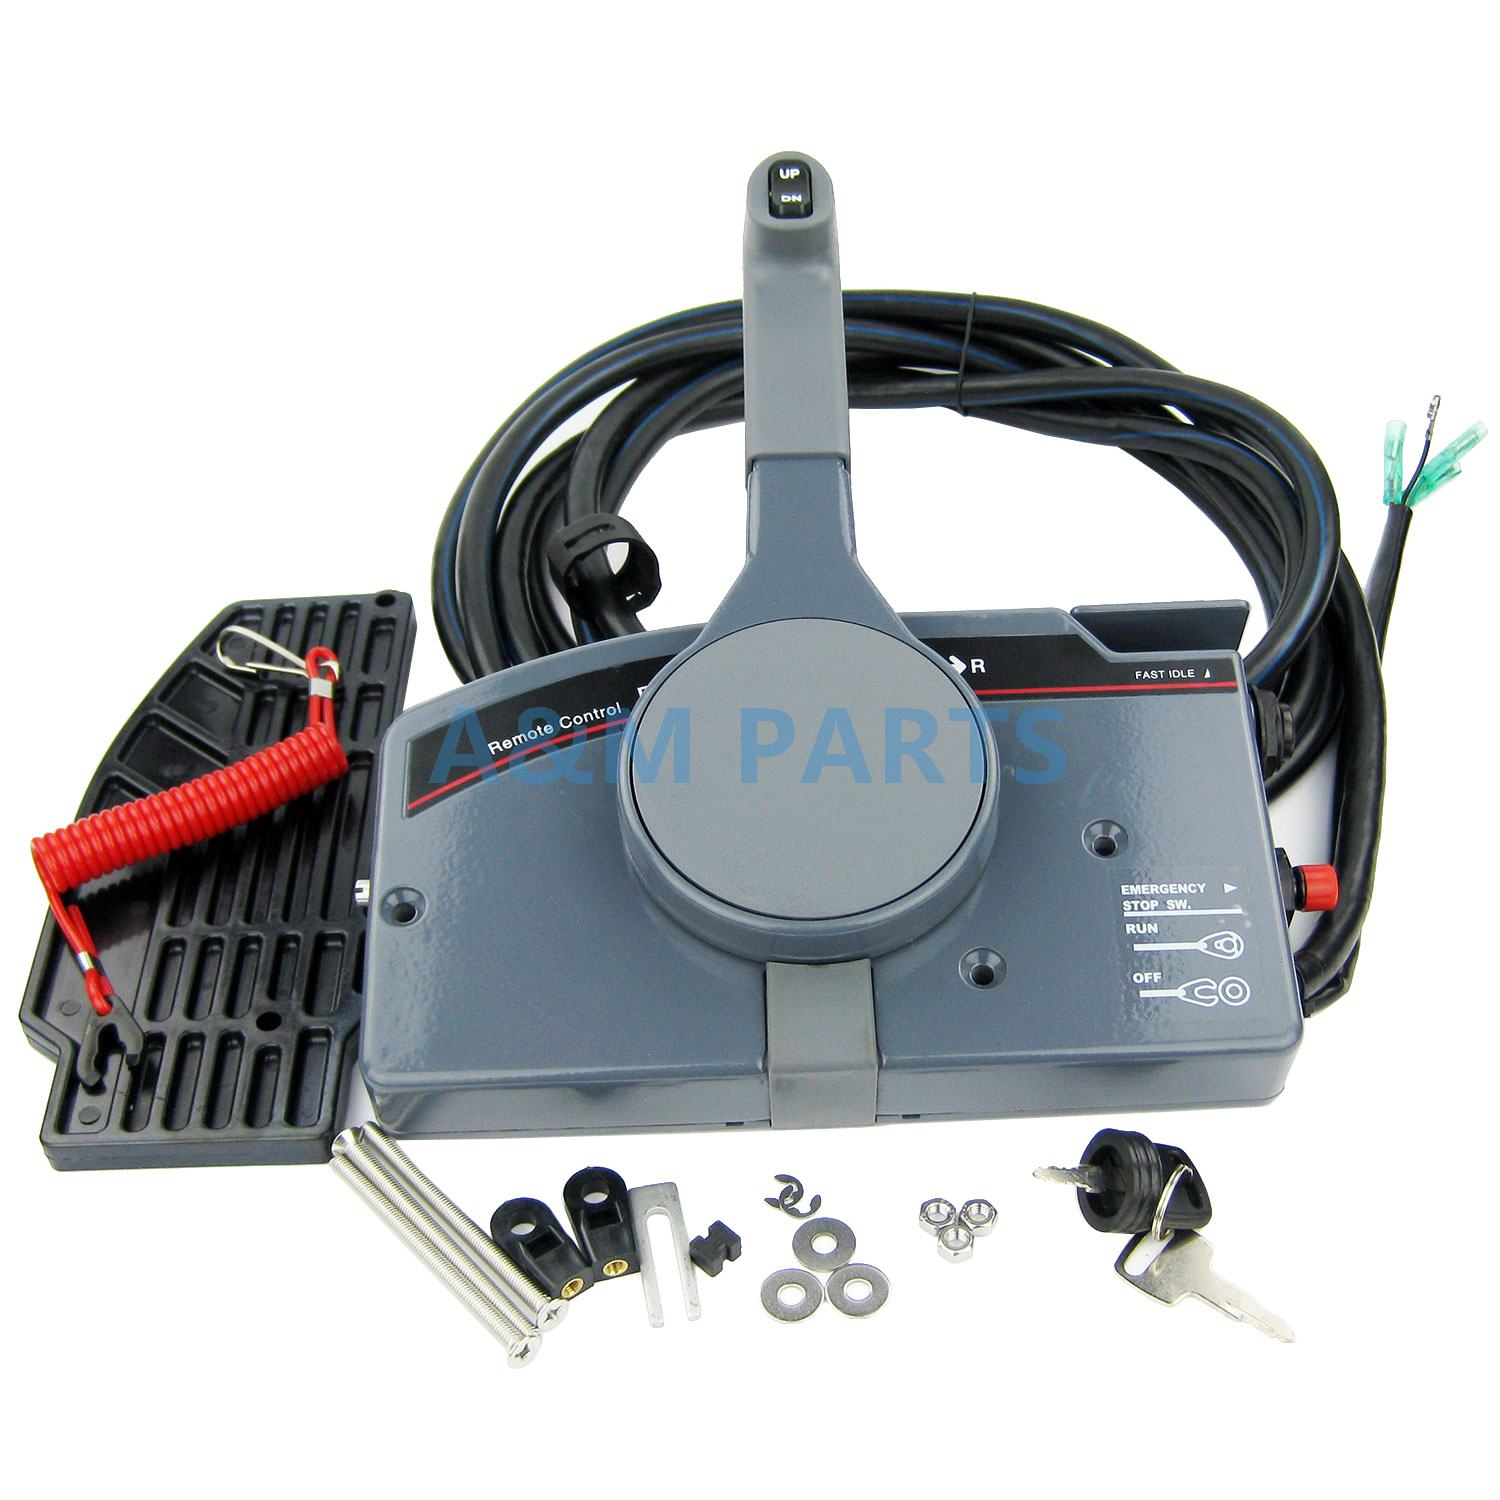 outboard remote control box for yamaha boat engine right. Black Bedroom Furniture Sets. Home Design Ideas